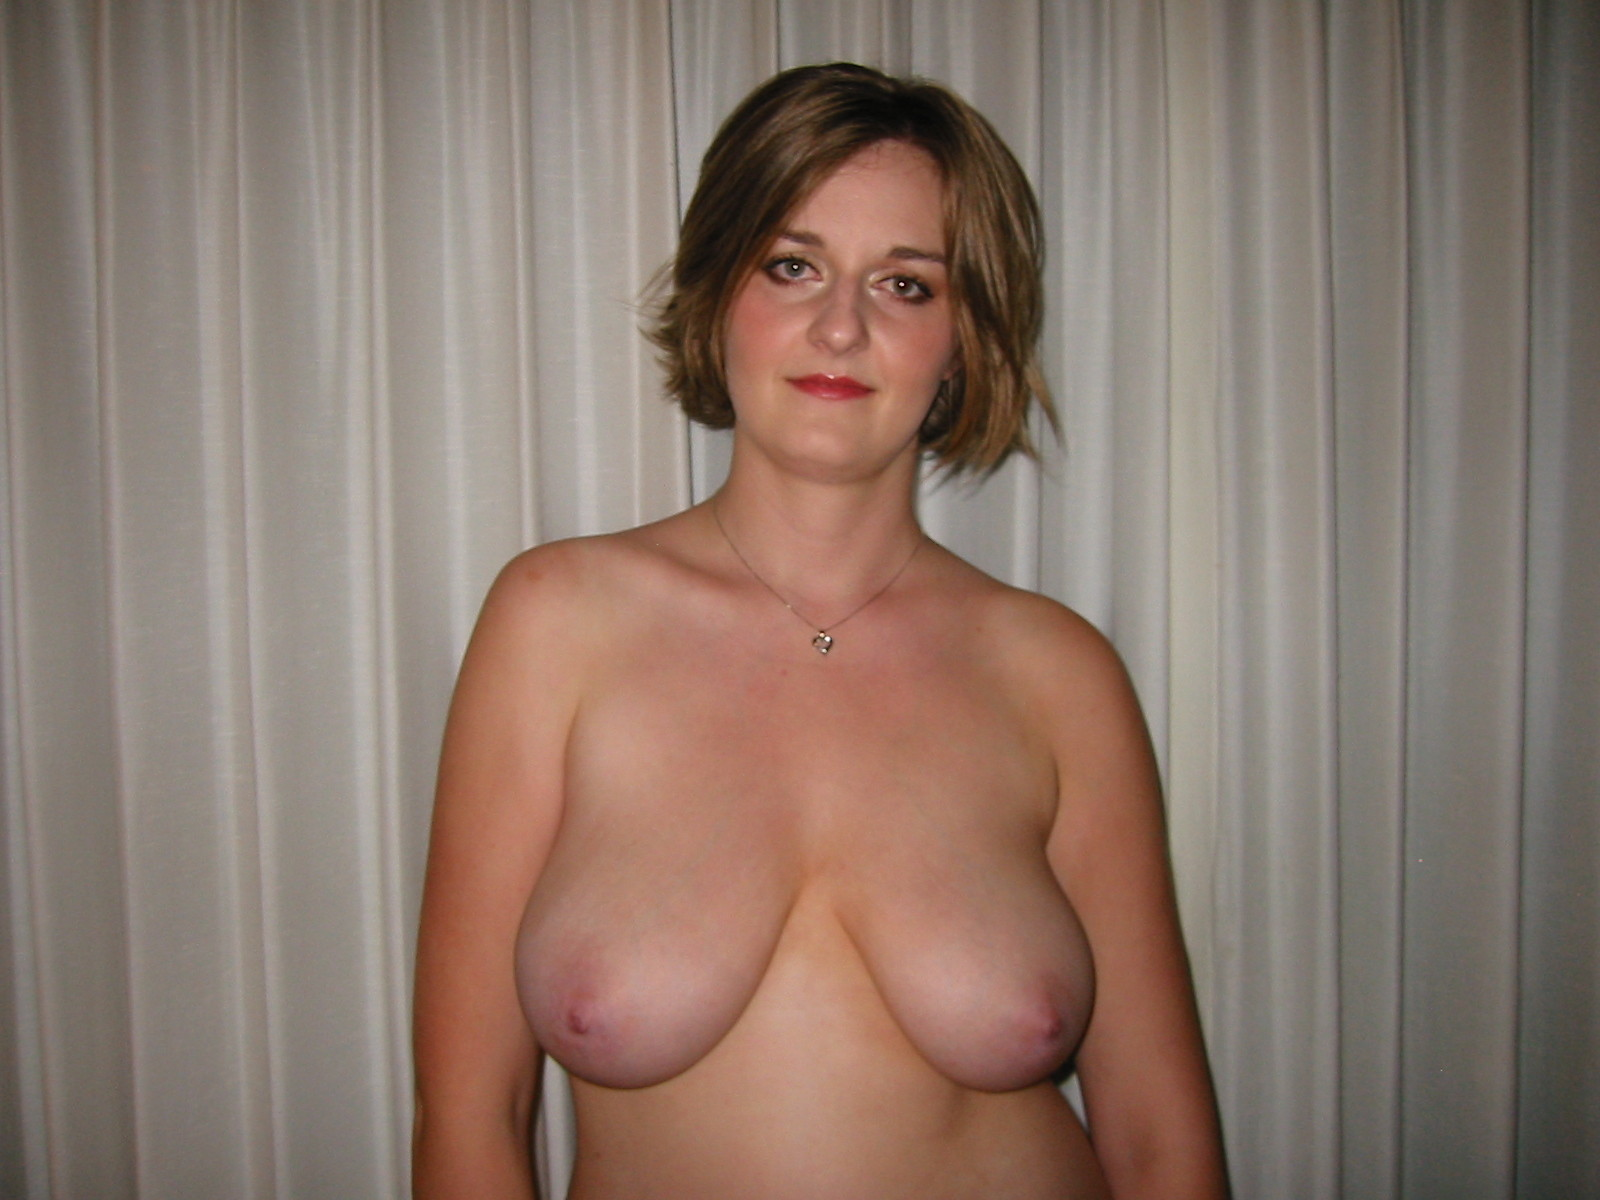 Amateurs With Big Tits 115